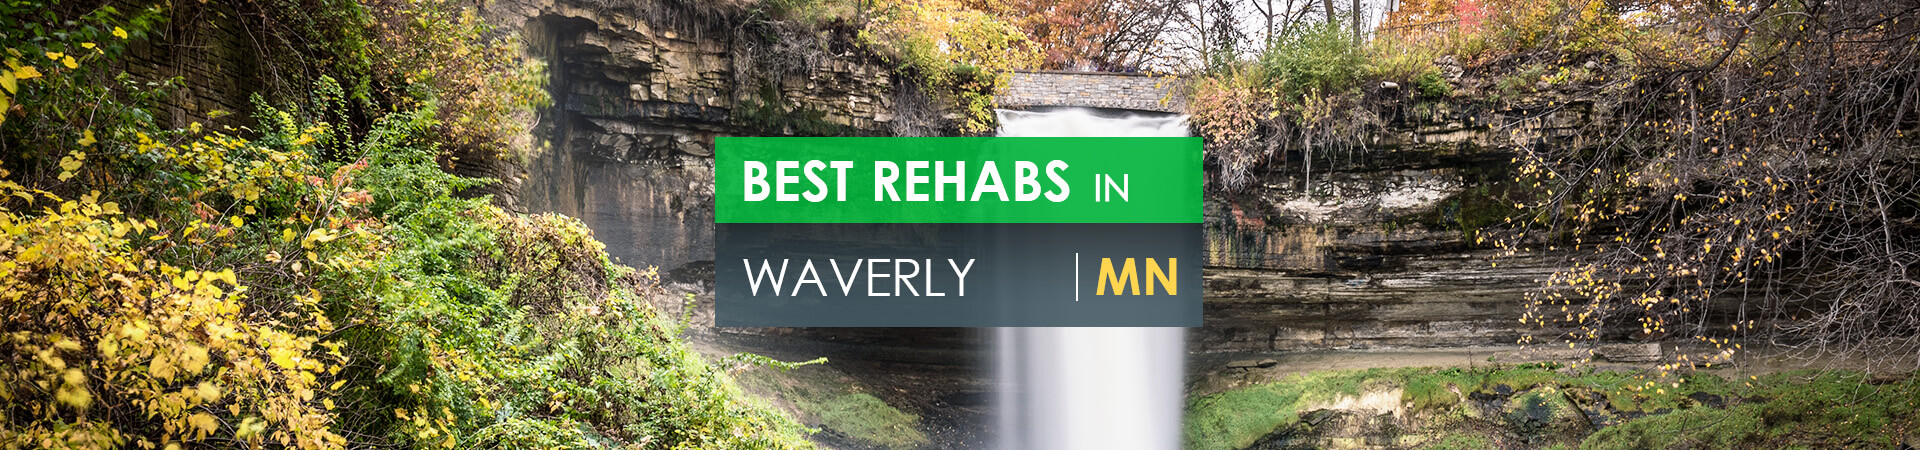 Best rehabs in Waverly, MN